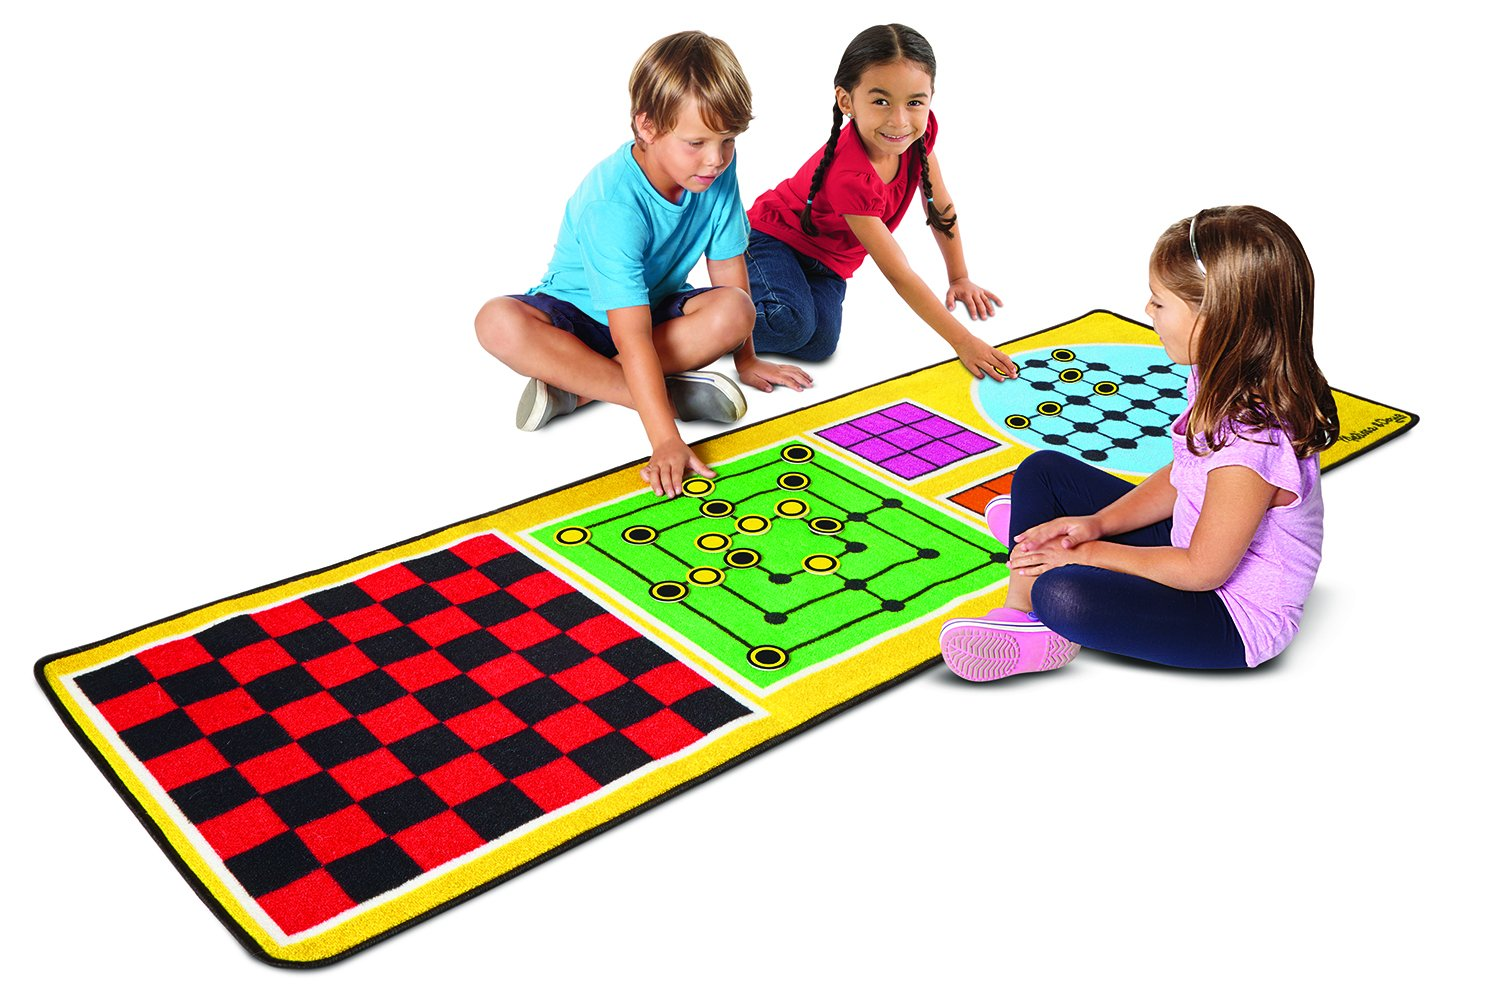 Melissa & Doug 4-in-1 Game Rug (78.5 x 26.5 inches) - 4 Board Games, 36 Game Pieces Melissa and Doug 9424